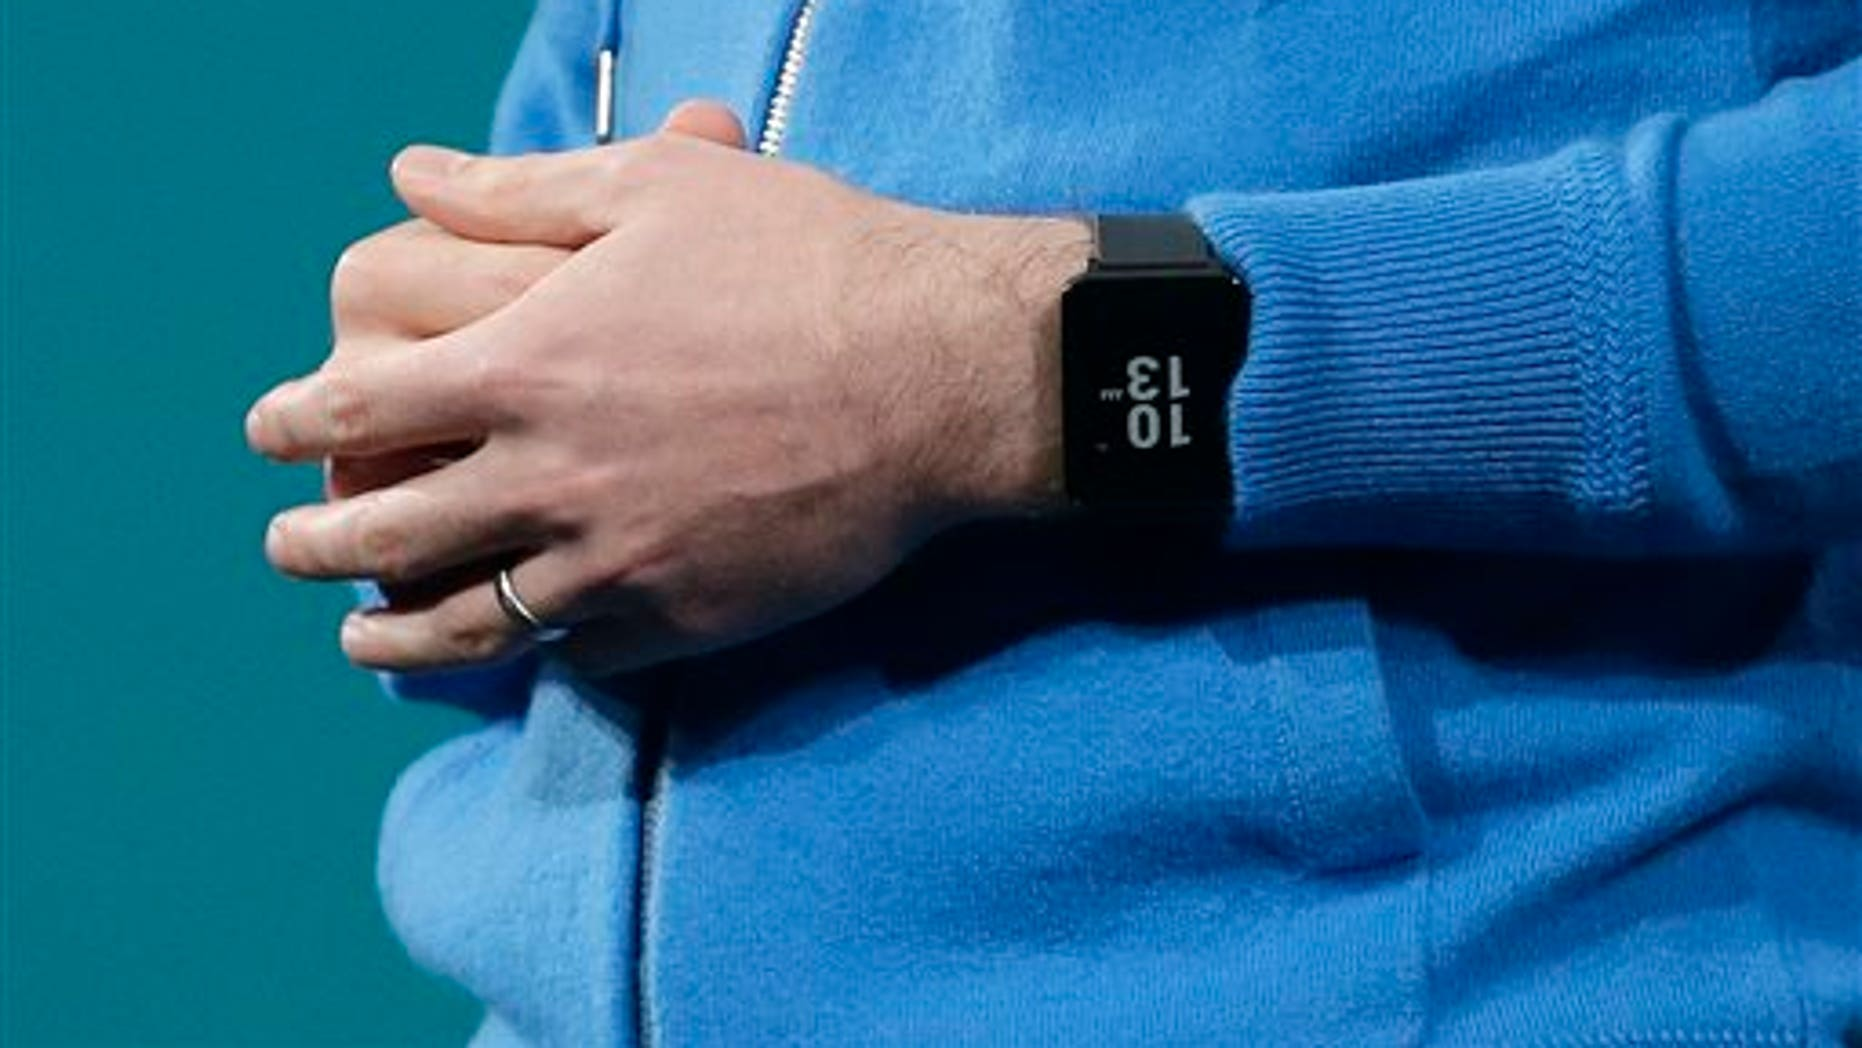 David Singleton, Android director of engineering, wears an Android Wear watch on his wrist while speaking at the Google I/O 2014 keynote presentation in San Francisco, Wednesday, June 25, 2014. As the Internet giant's Android operating system stretches into cars, homes and smartwatches, this year's annual confab will expand on its usual focus on smartphones and tablets. (AP Photo/Jeff Chiu)